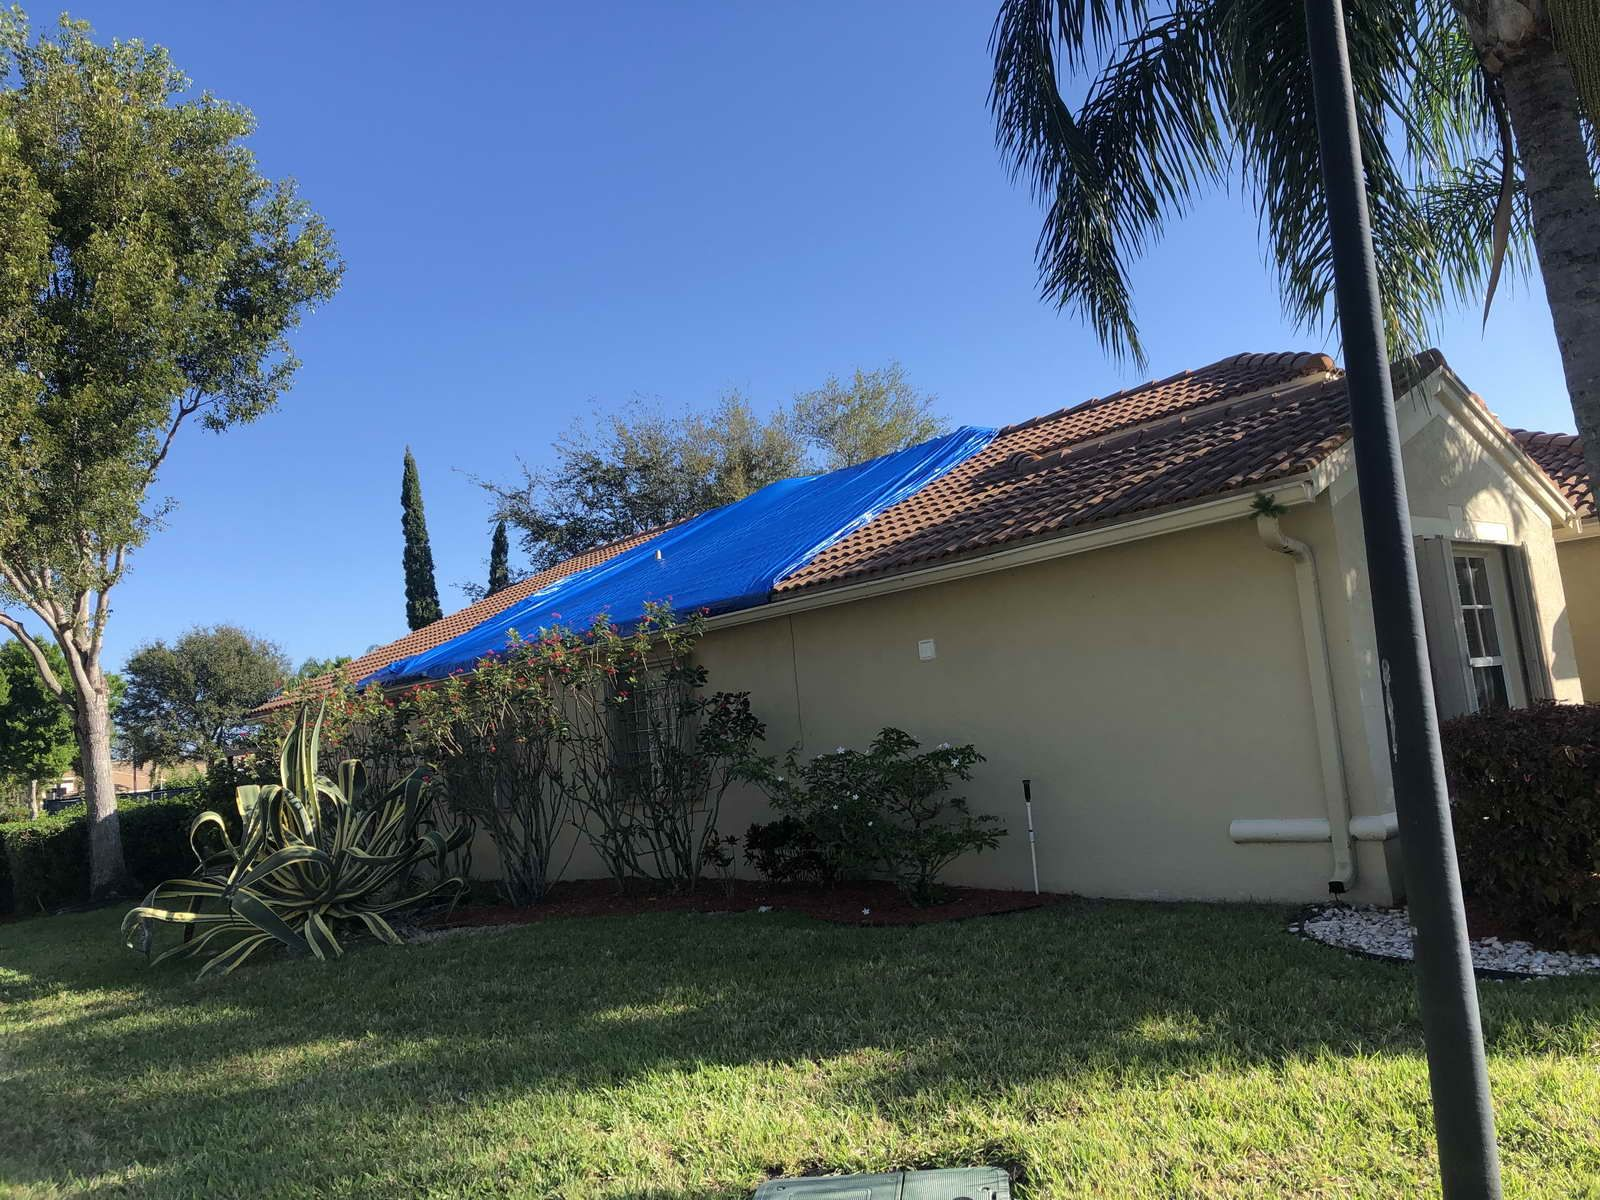 If You Have Any Water Damage Issues That Require Leak Detection Roof Tarp Or Flood Damage Contact A2z Water Damage In 2020 With Images Roof Damage Miami Dade County Water Damage